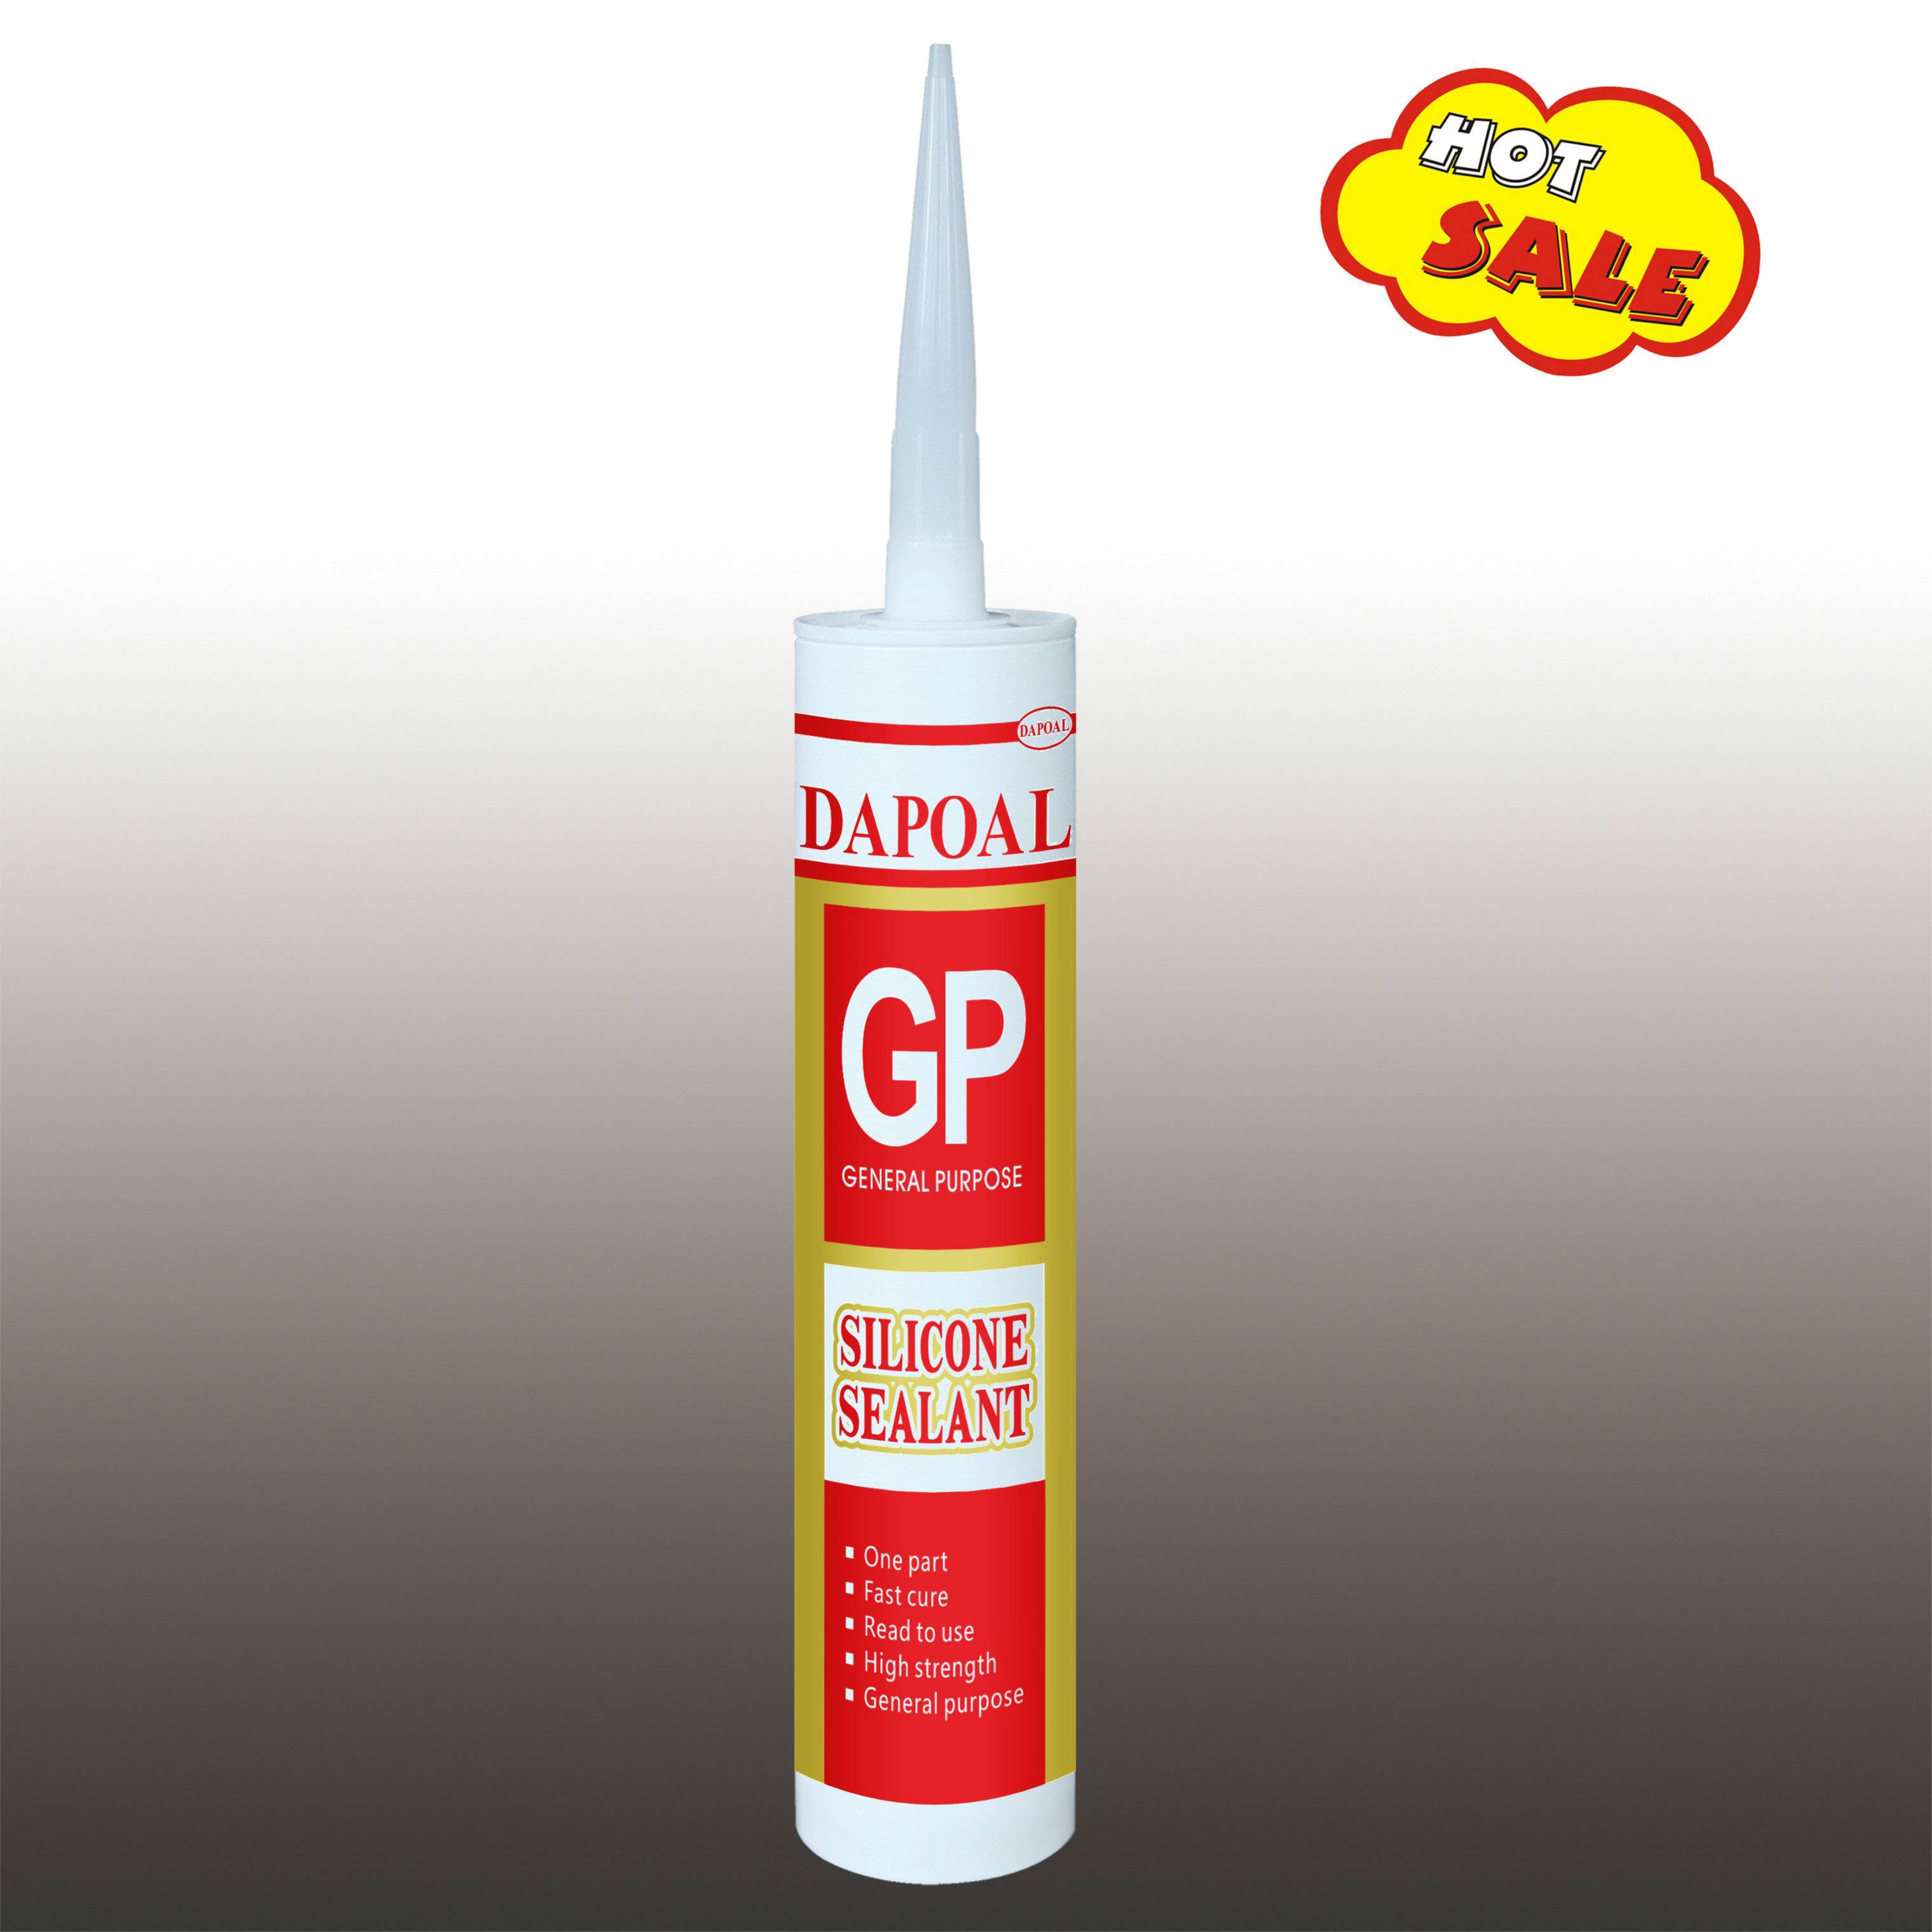 GP general purpose silicon sealant